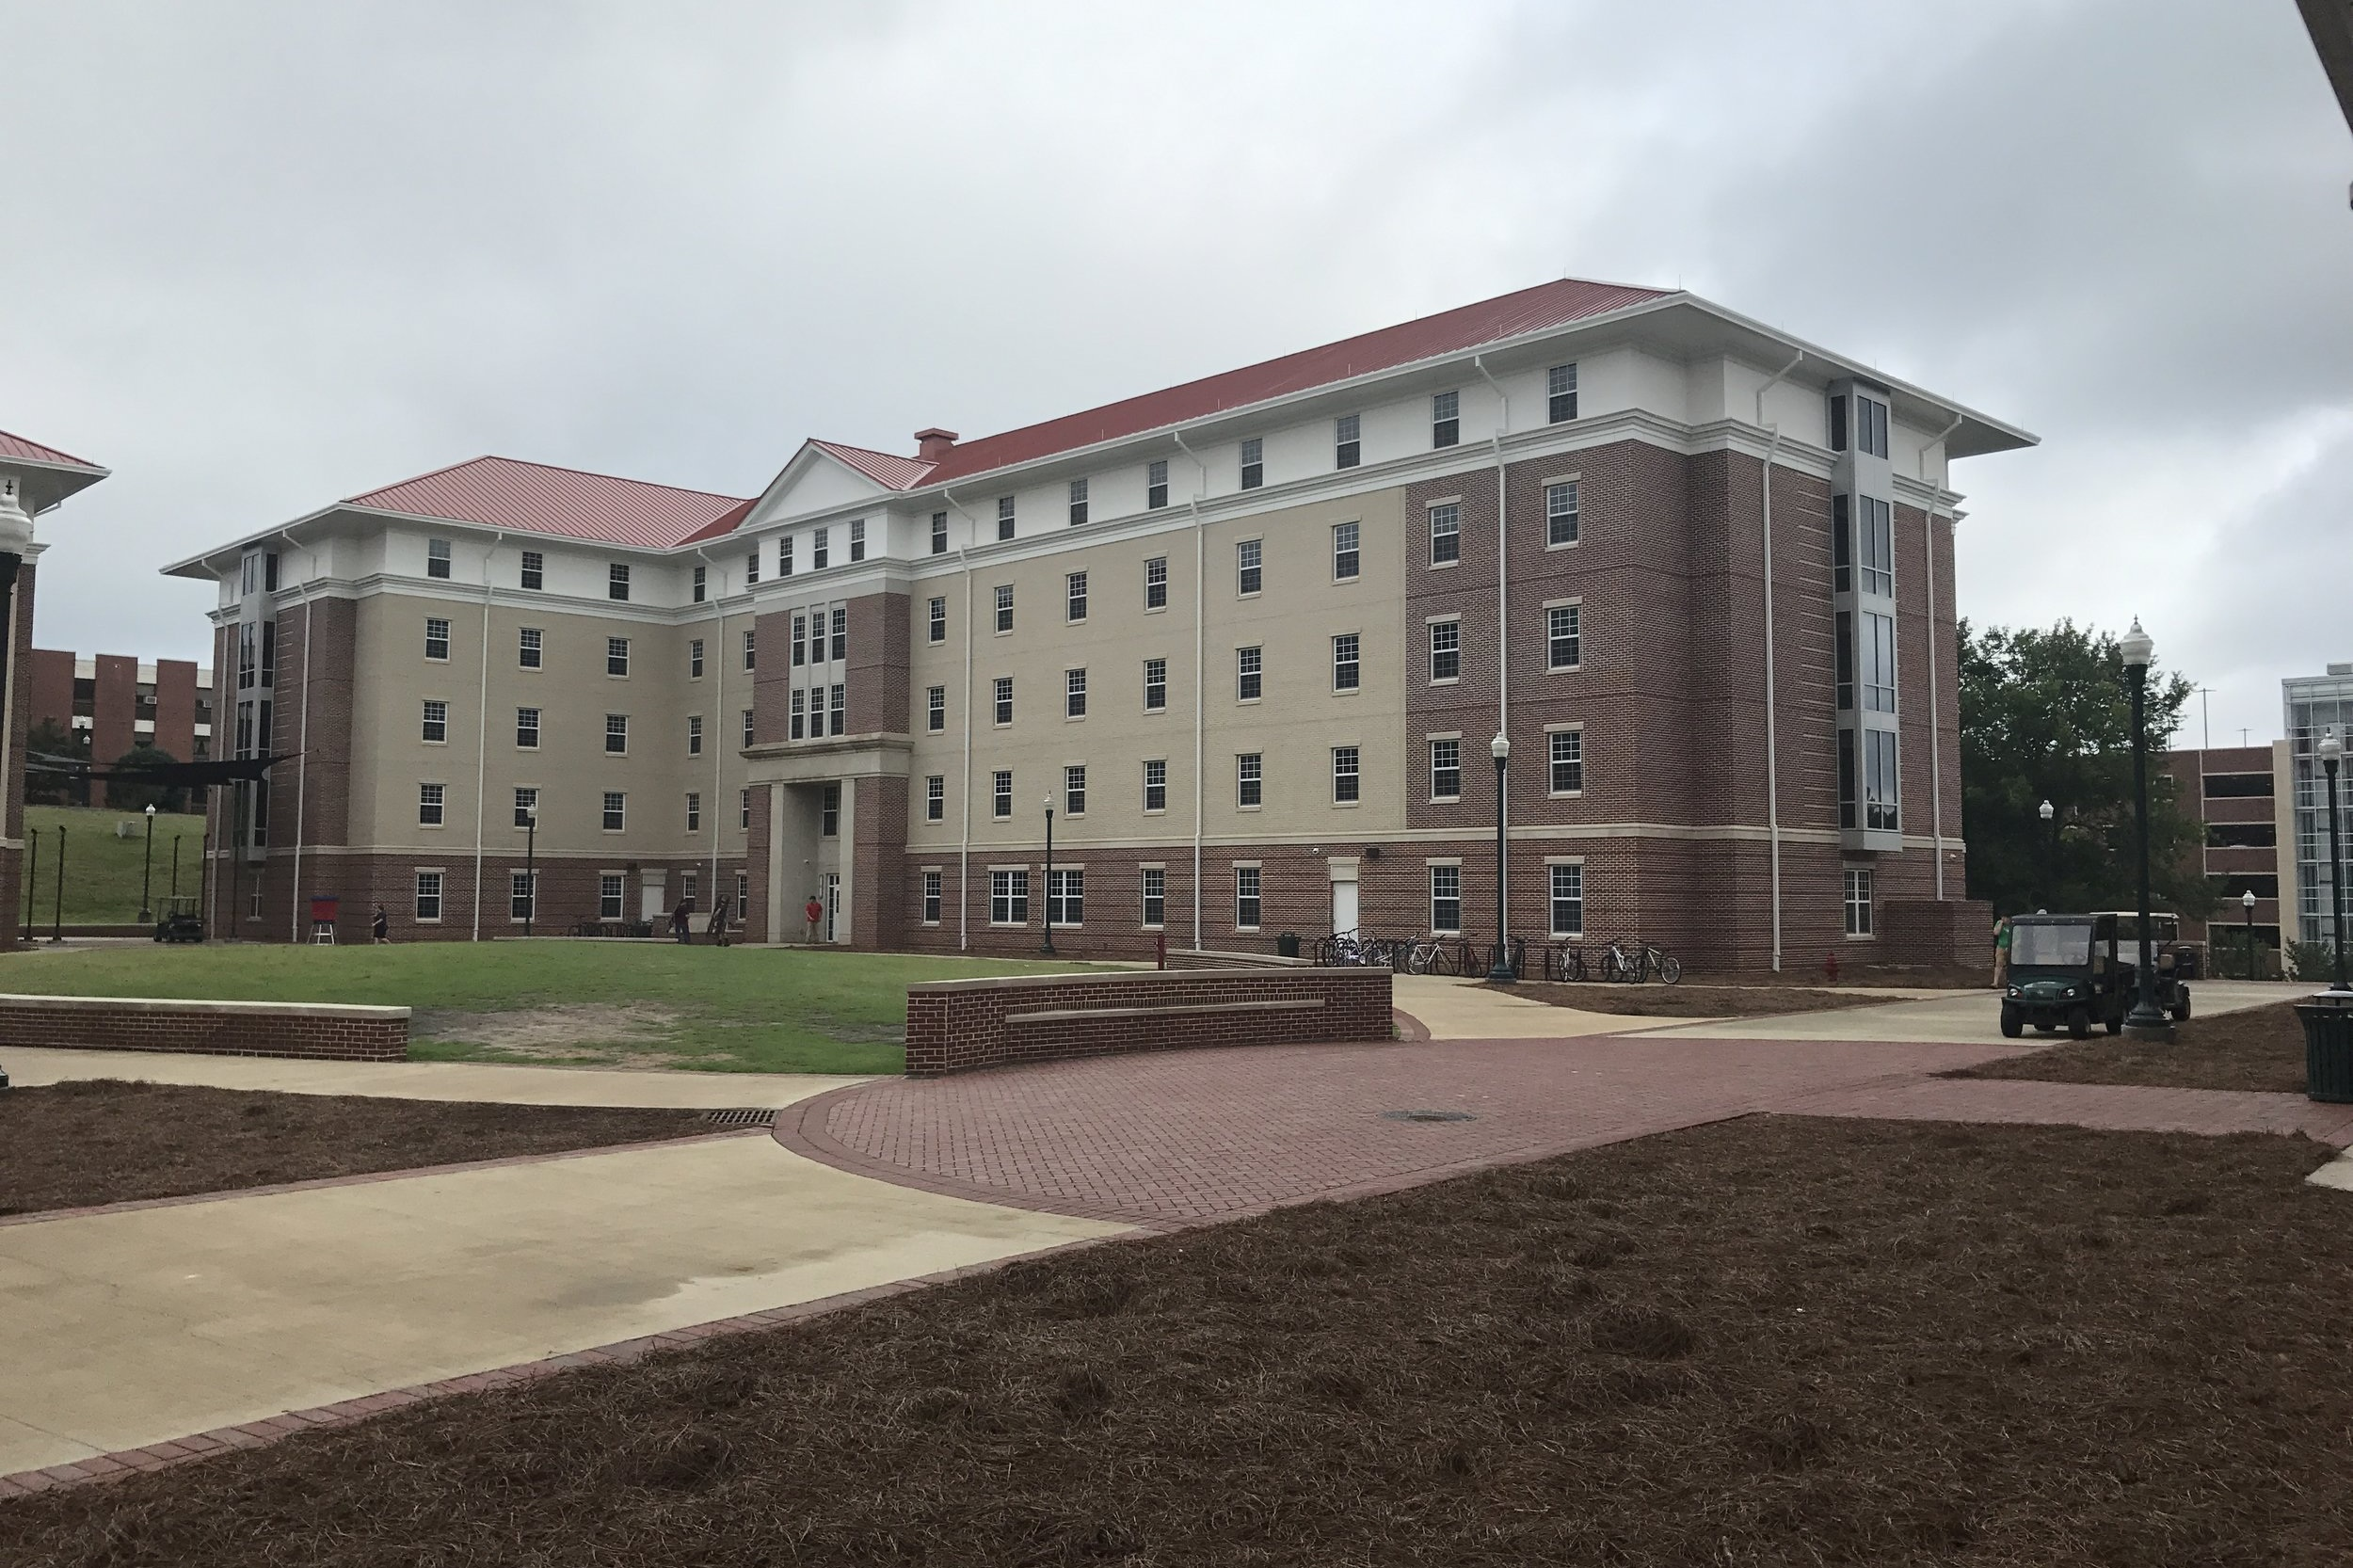 UNIVERSITY OF MISSISSIPPI - NORTH HALL